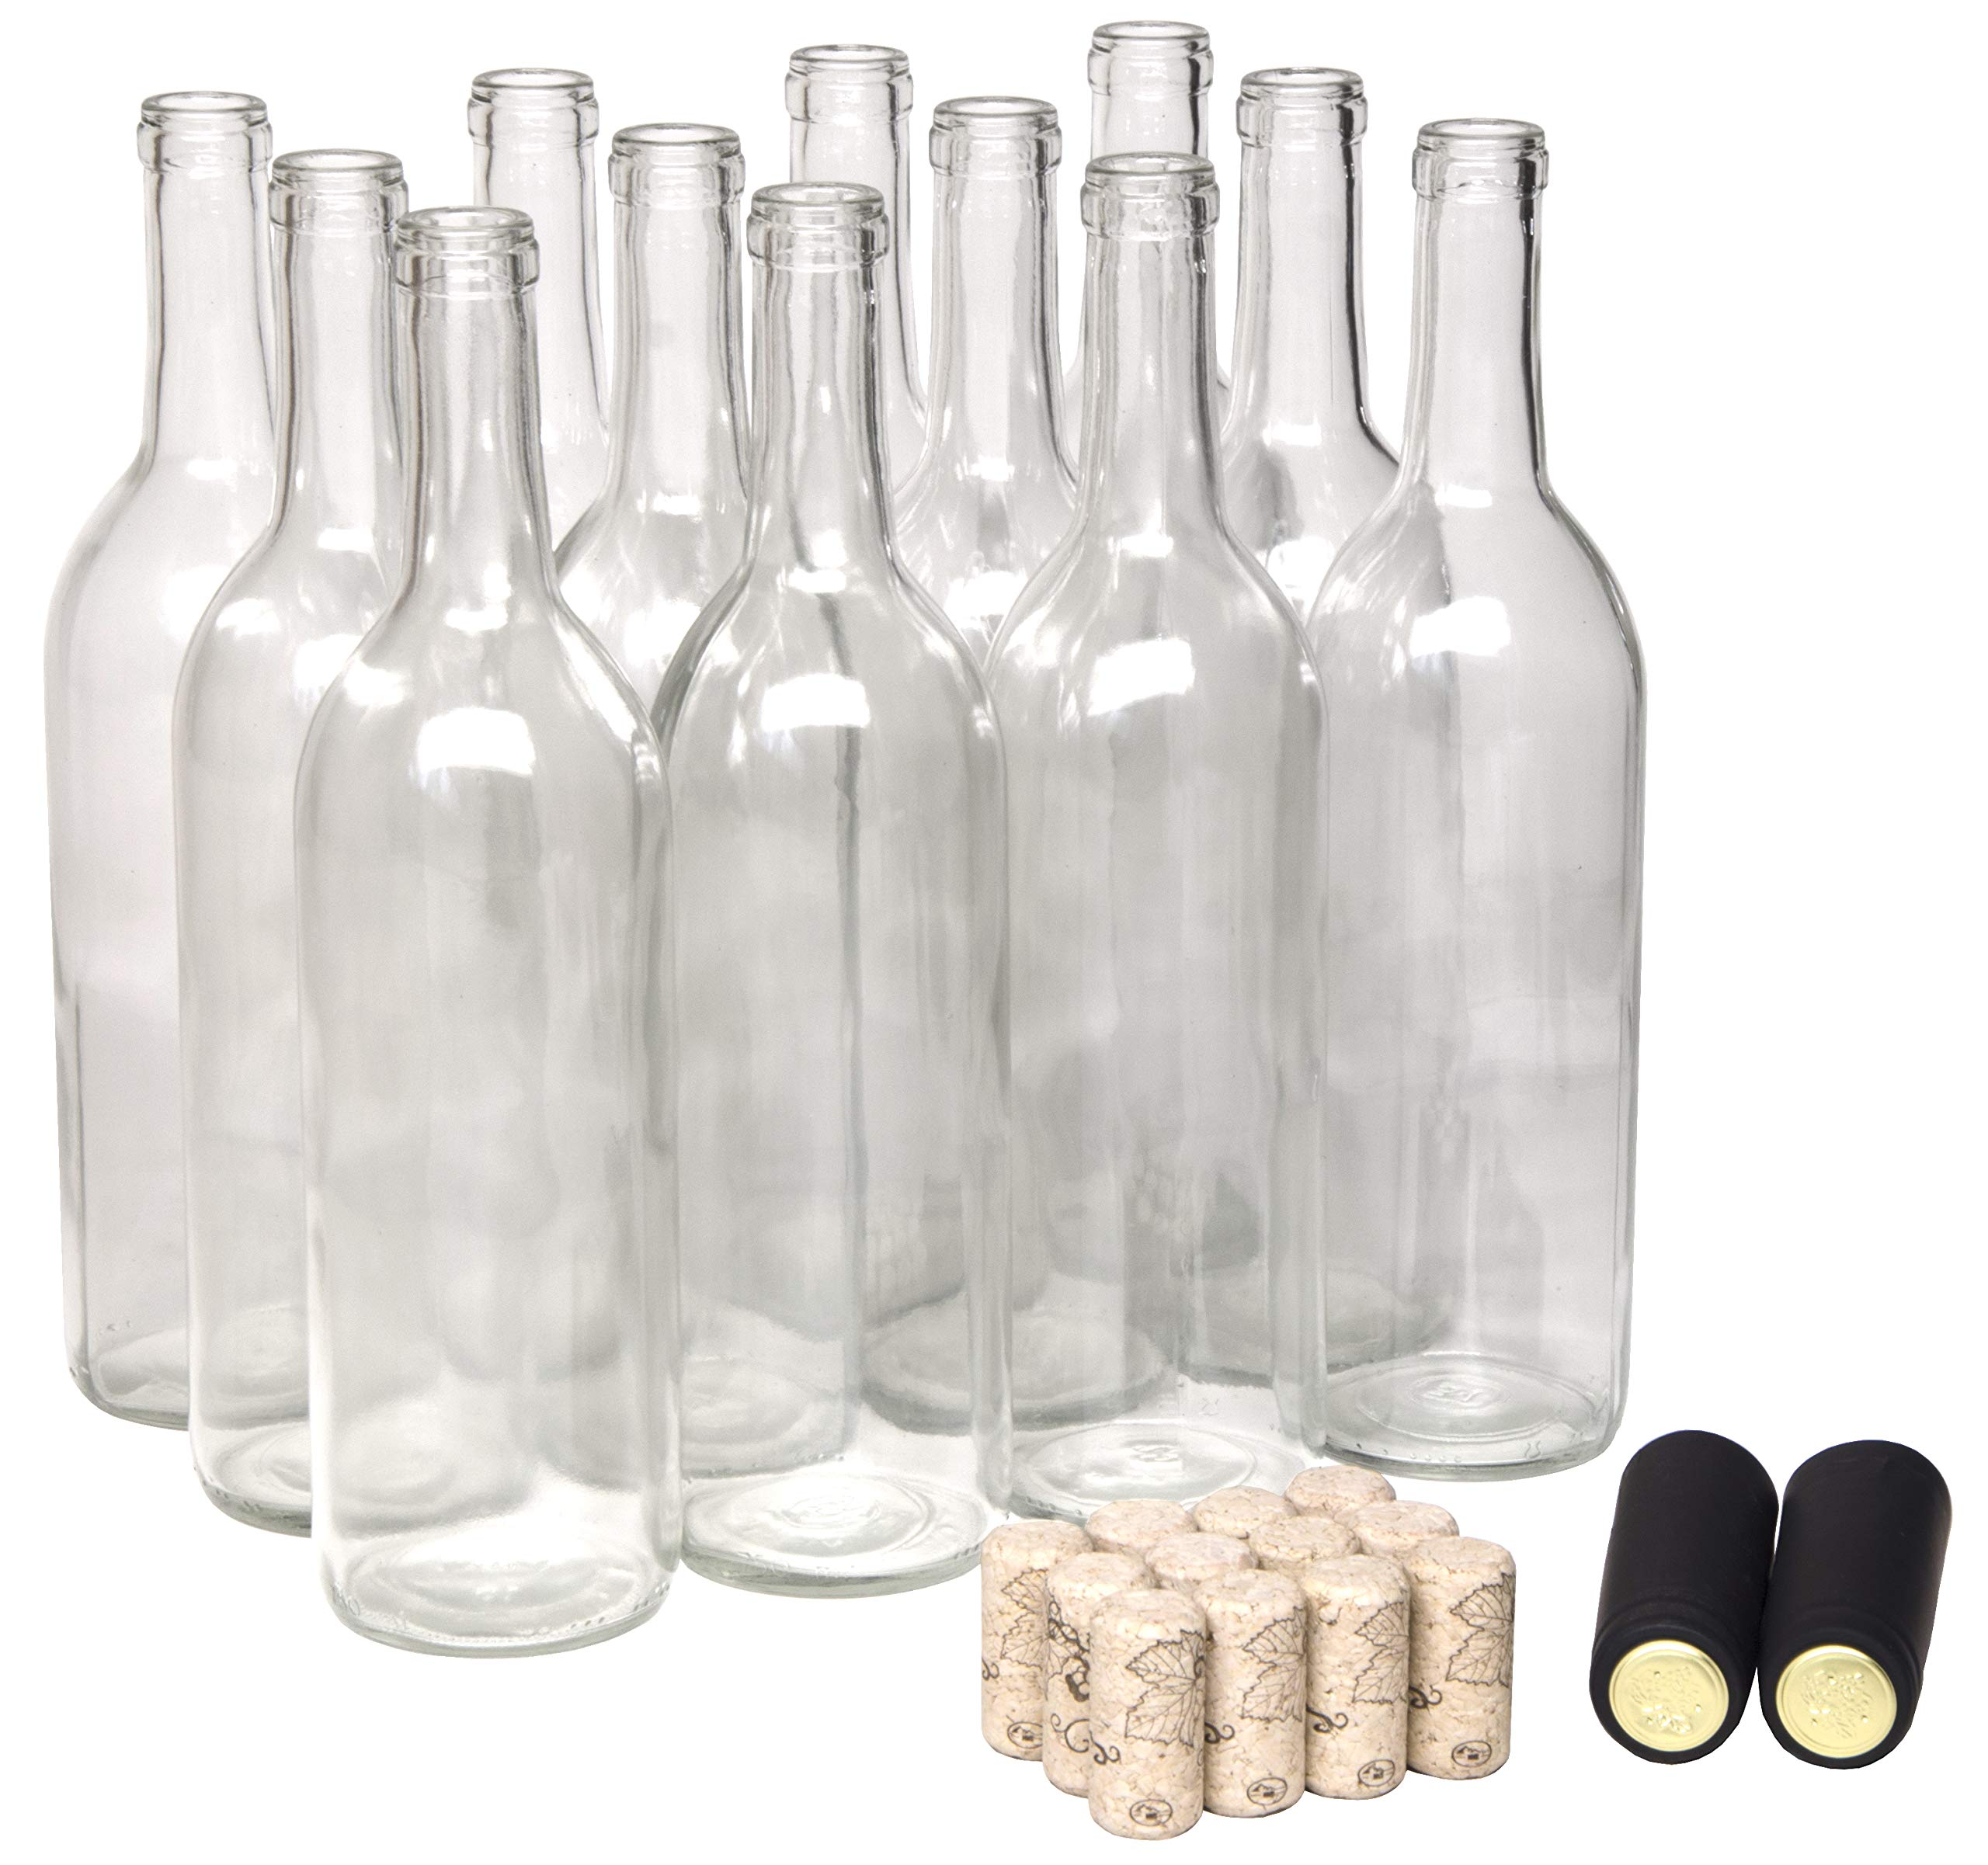 North Mountain Supply 750ml Clear Glass Bordeaux Wine Bottle Flat-Bottomed Cork Finish - with #8 Premium Natural Corks & Black PVC Shrink Capsules - Case of 12 by North Mountain Supply